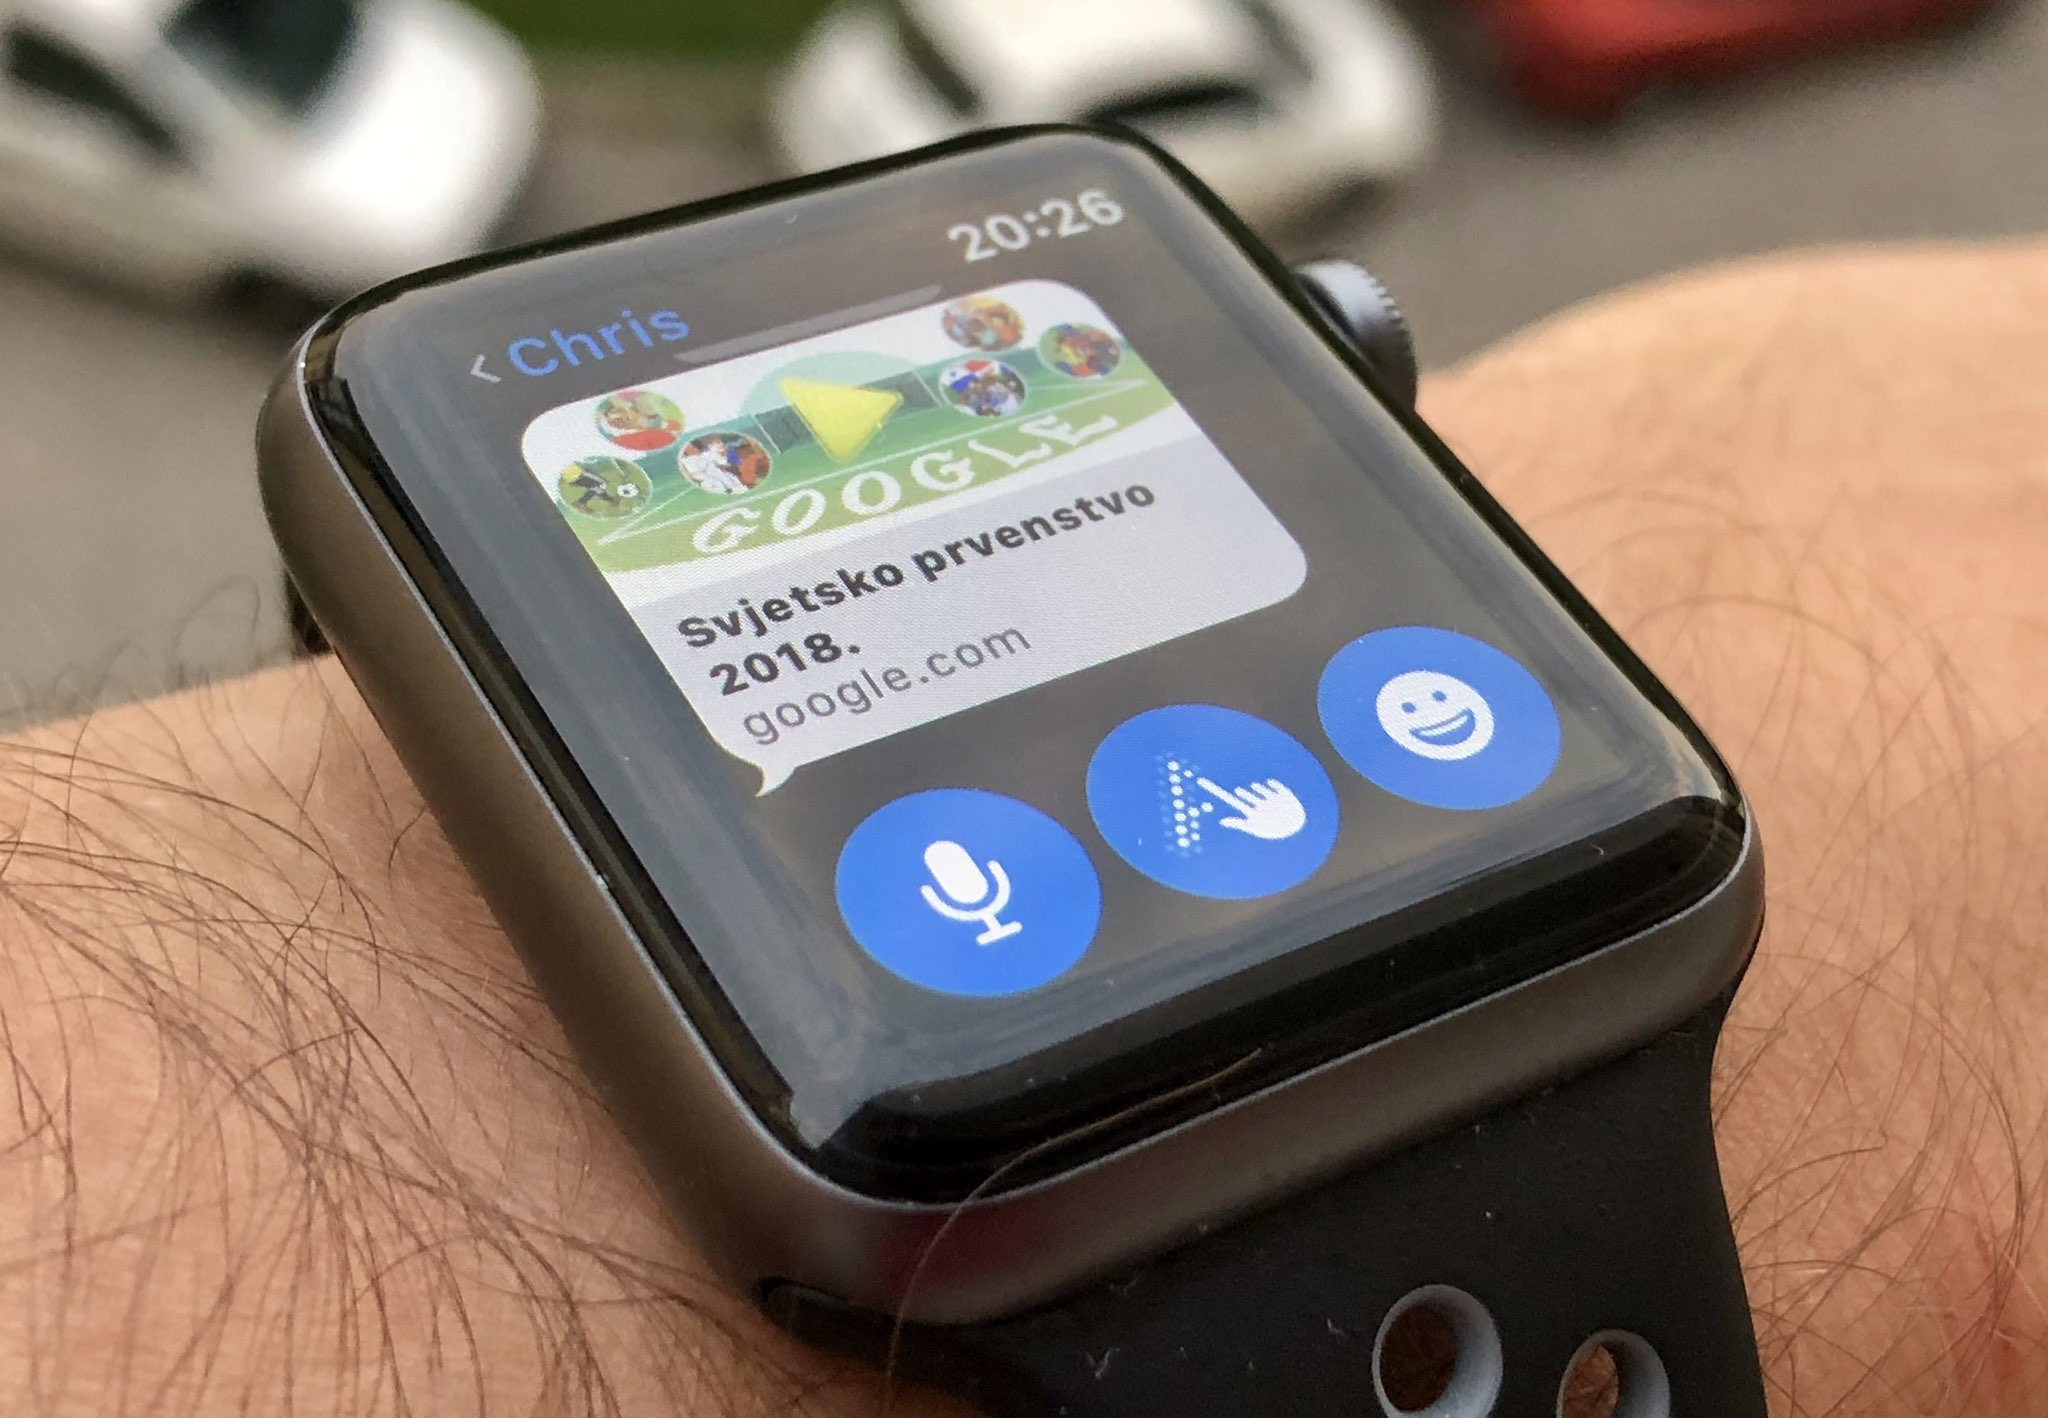 Apple Watch with watchOS 5 showing a Gogole.com link in Messages